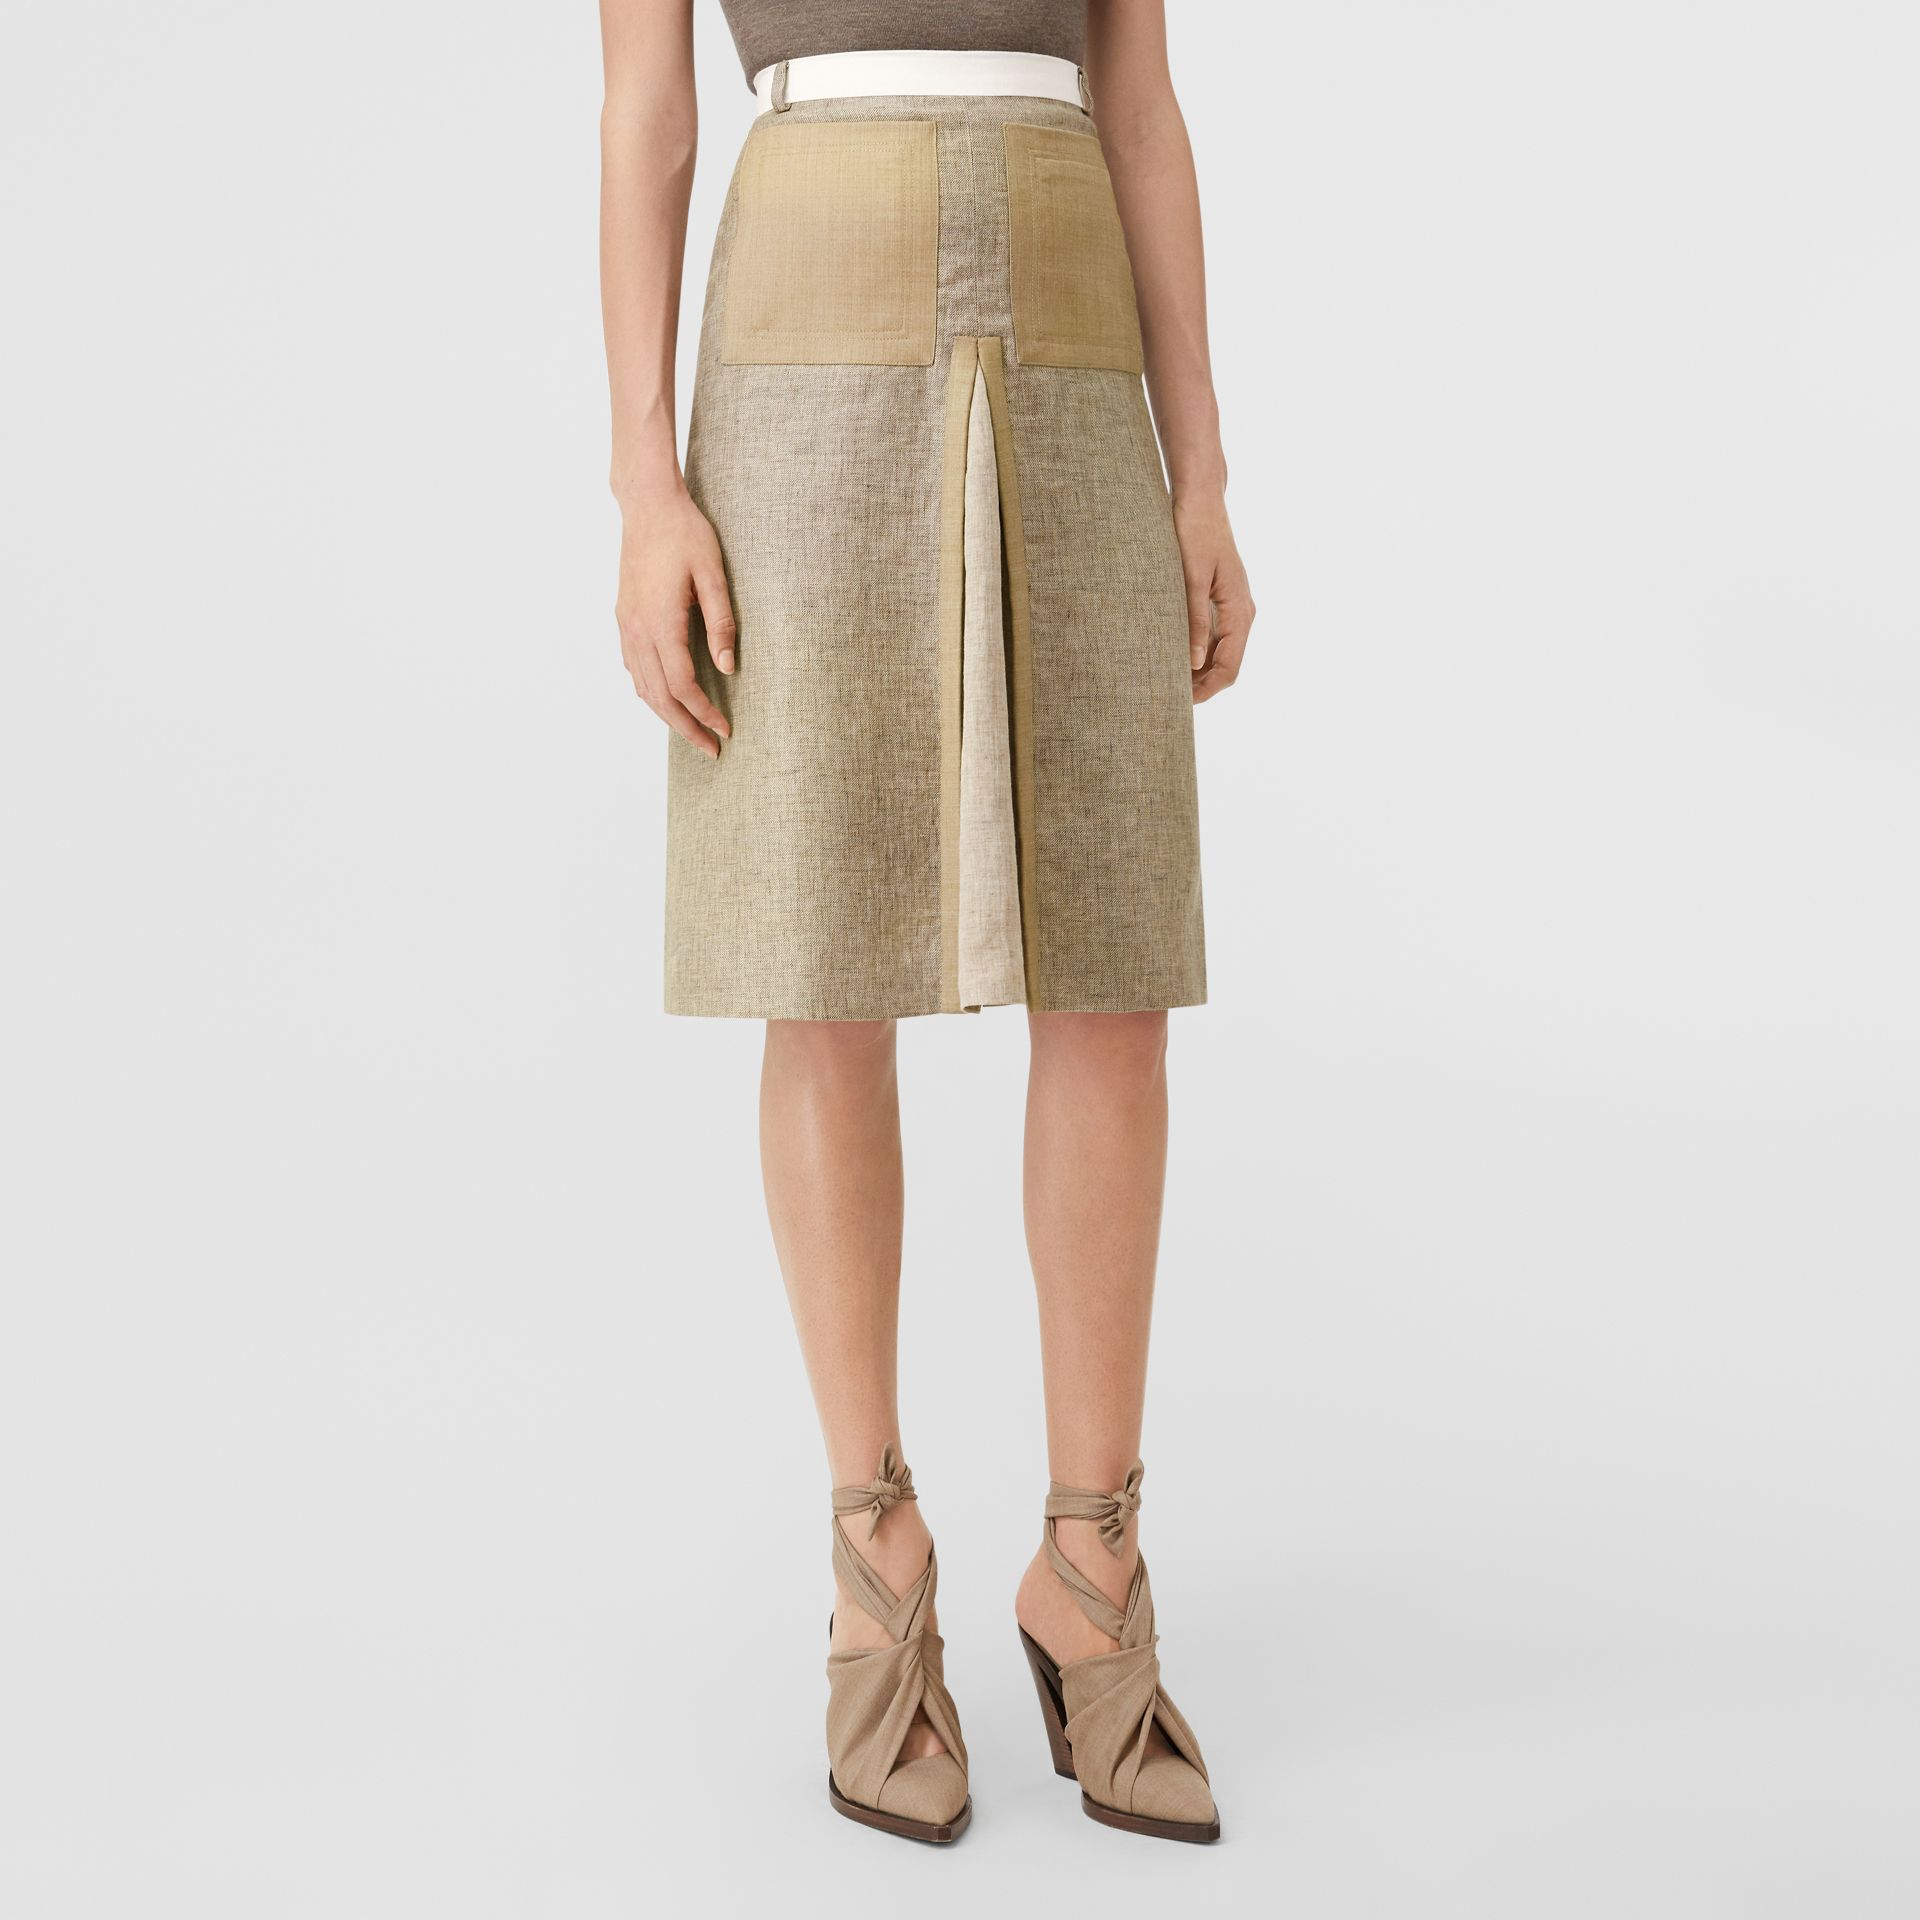 Box-pleat Detail Wool Cashmere A-line Skirt in Pecan Melange - Women | Burberry Canada - gallery image 6